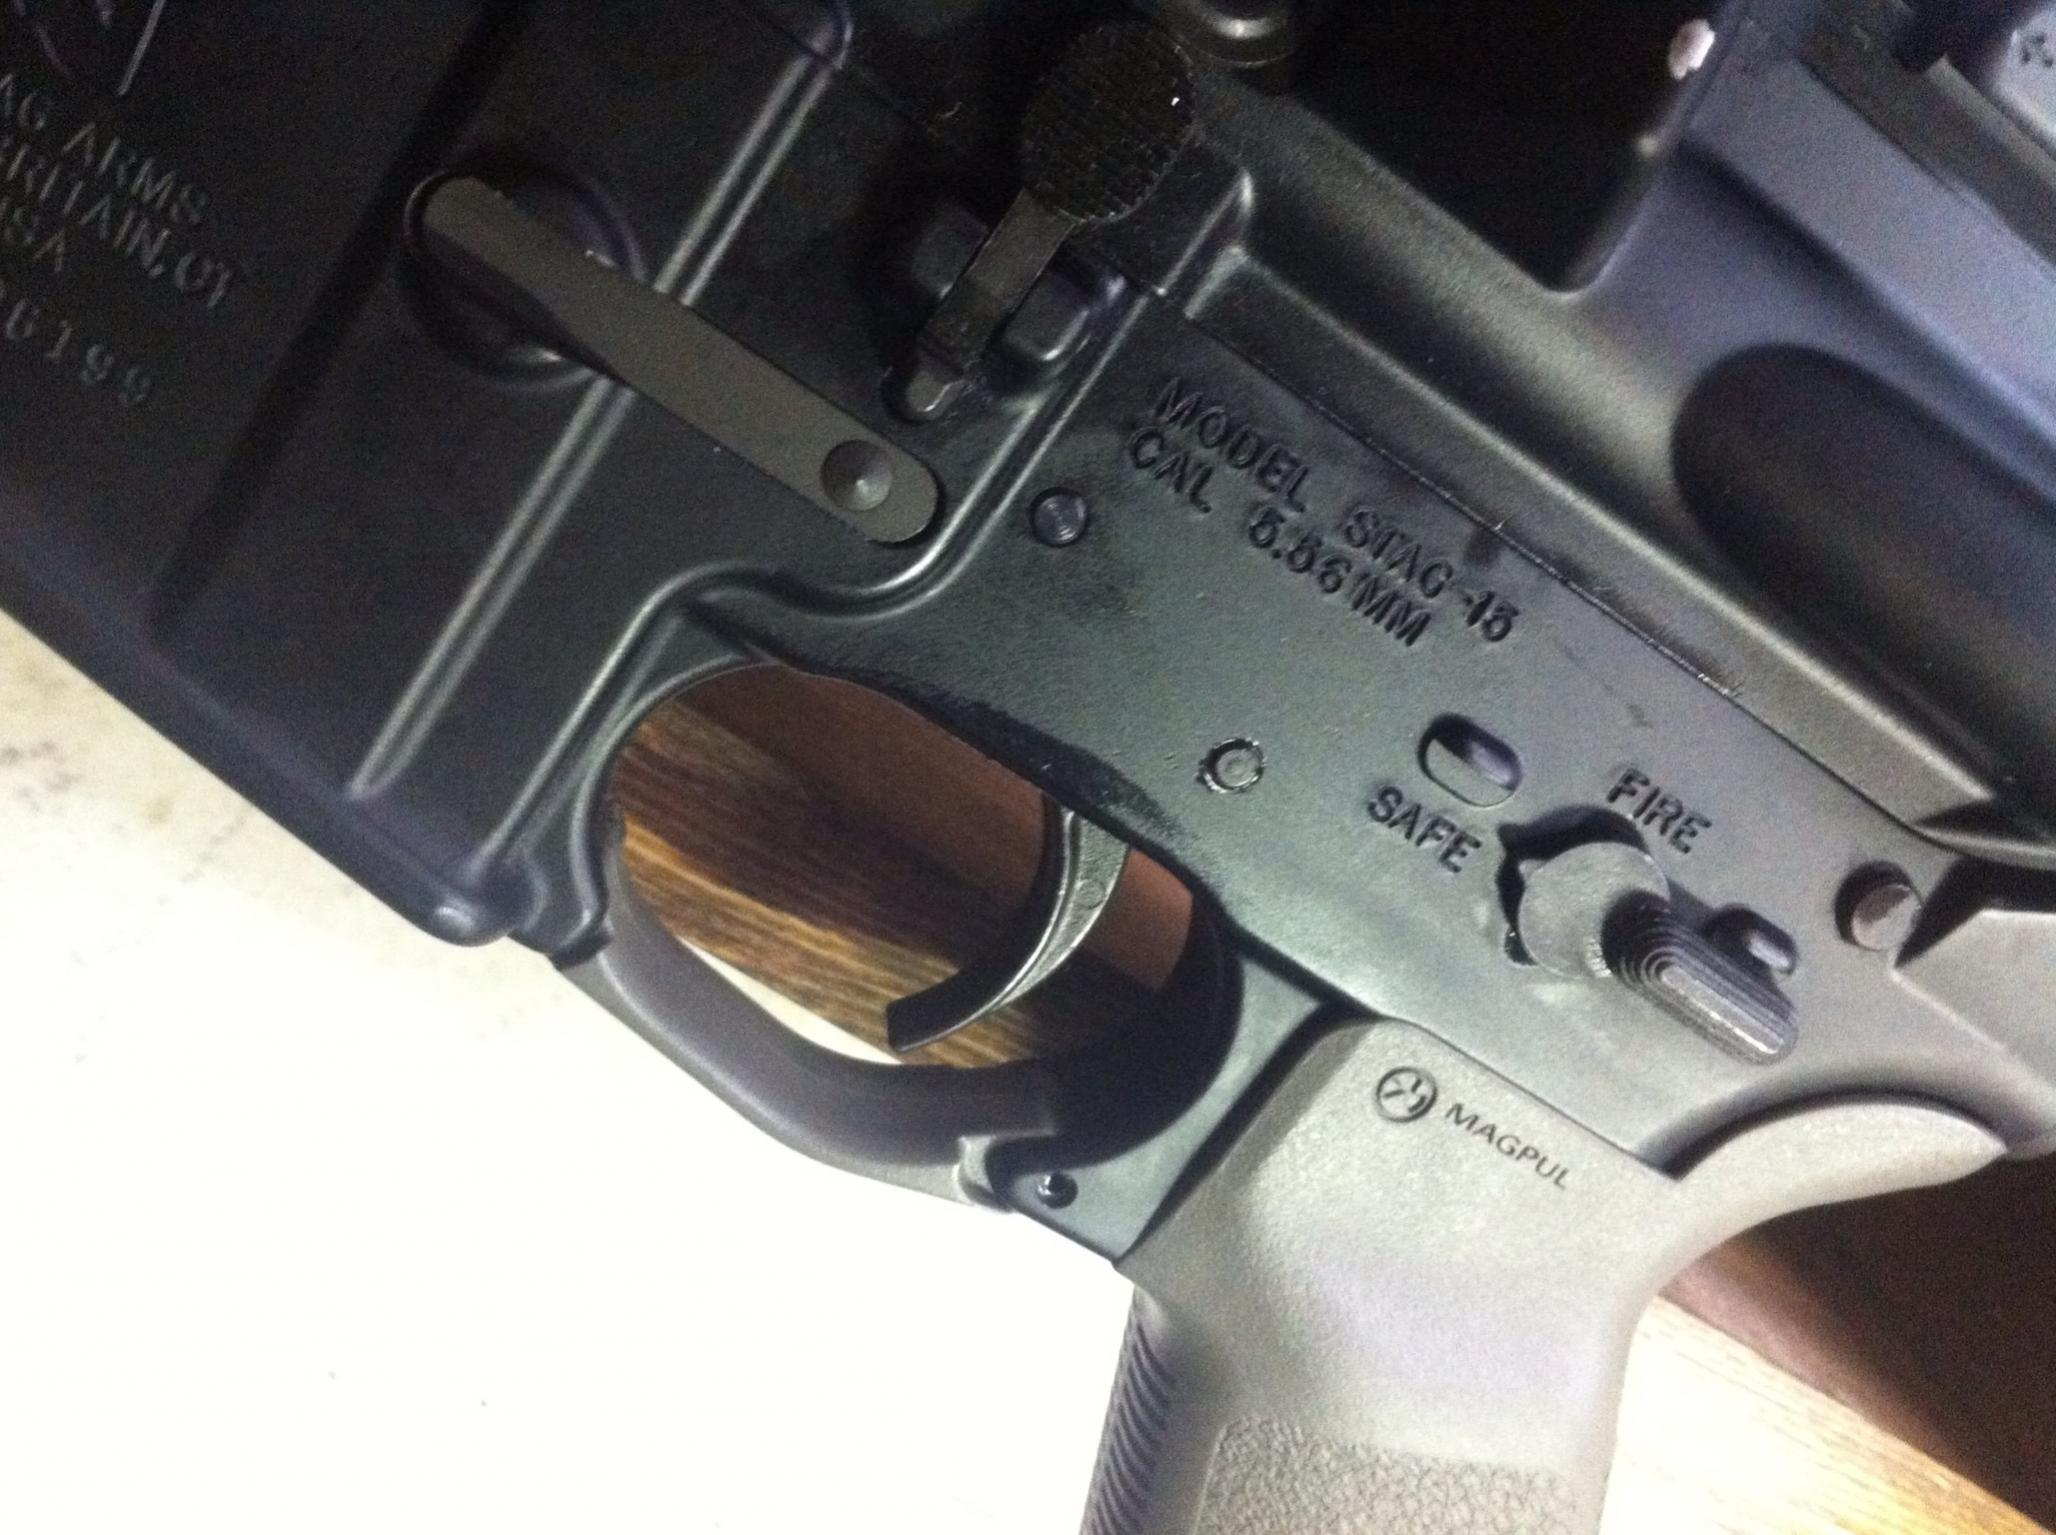 Ambi safety install for AR-image.jpg